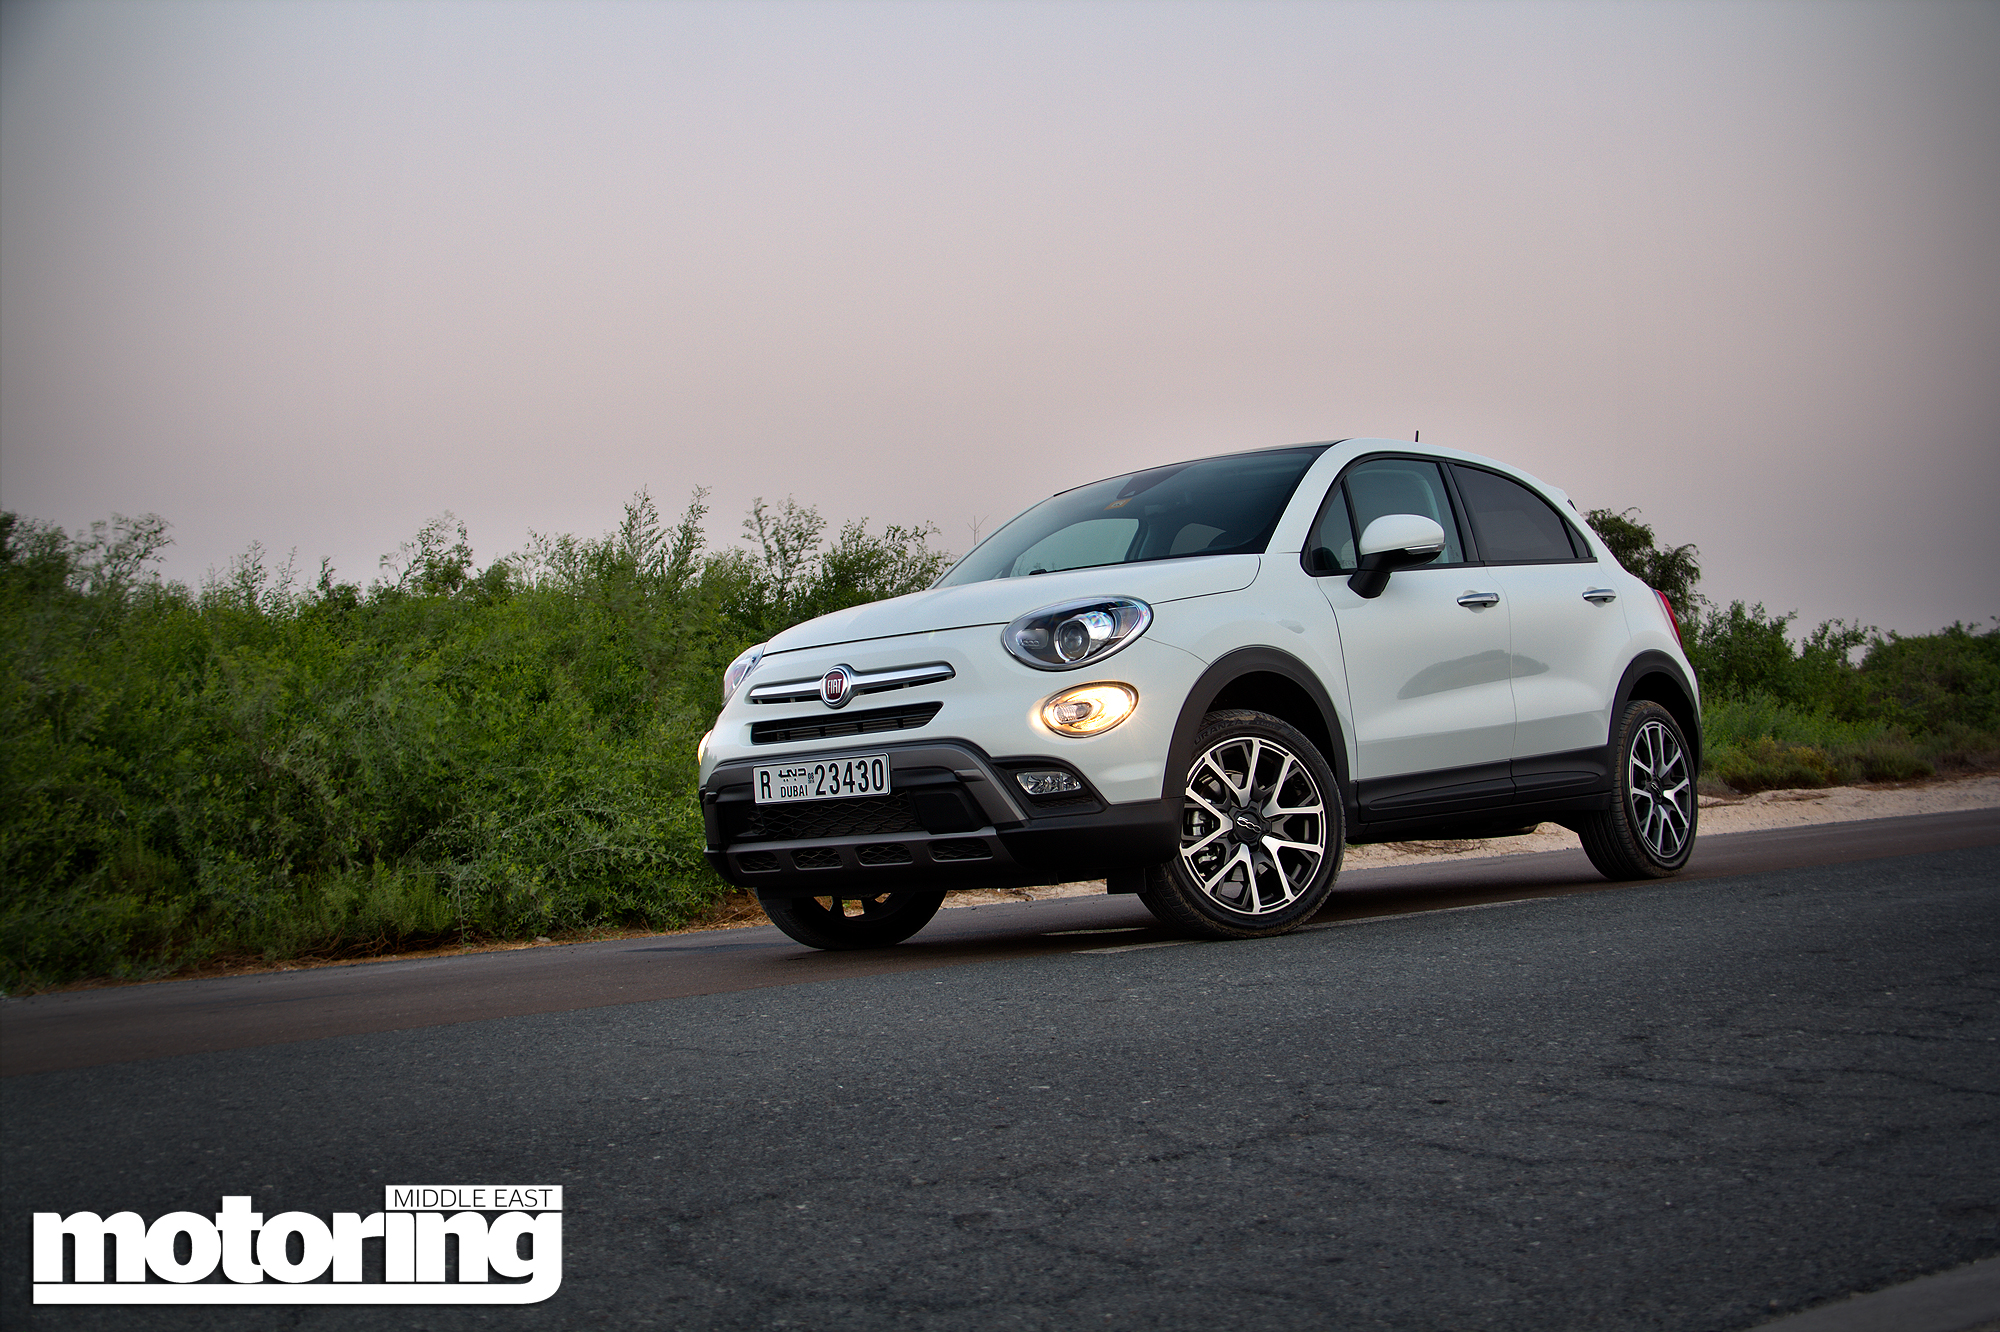 fiat 500x cross plus video reviewmotoring middle east car news reviews and buying guides. Black Bedroom Furniture Sets. Home Design Ideas